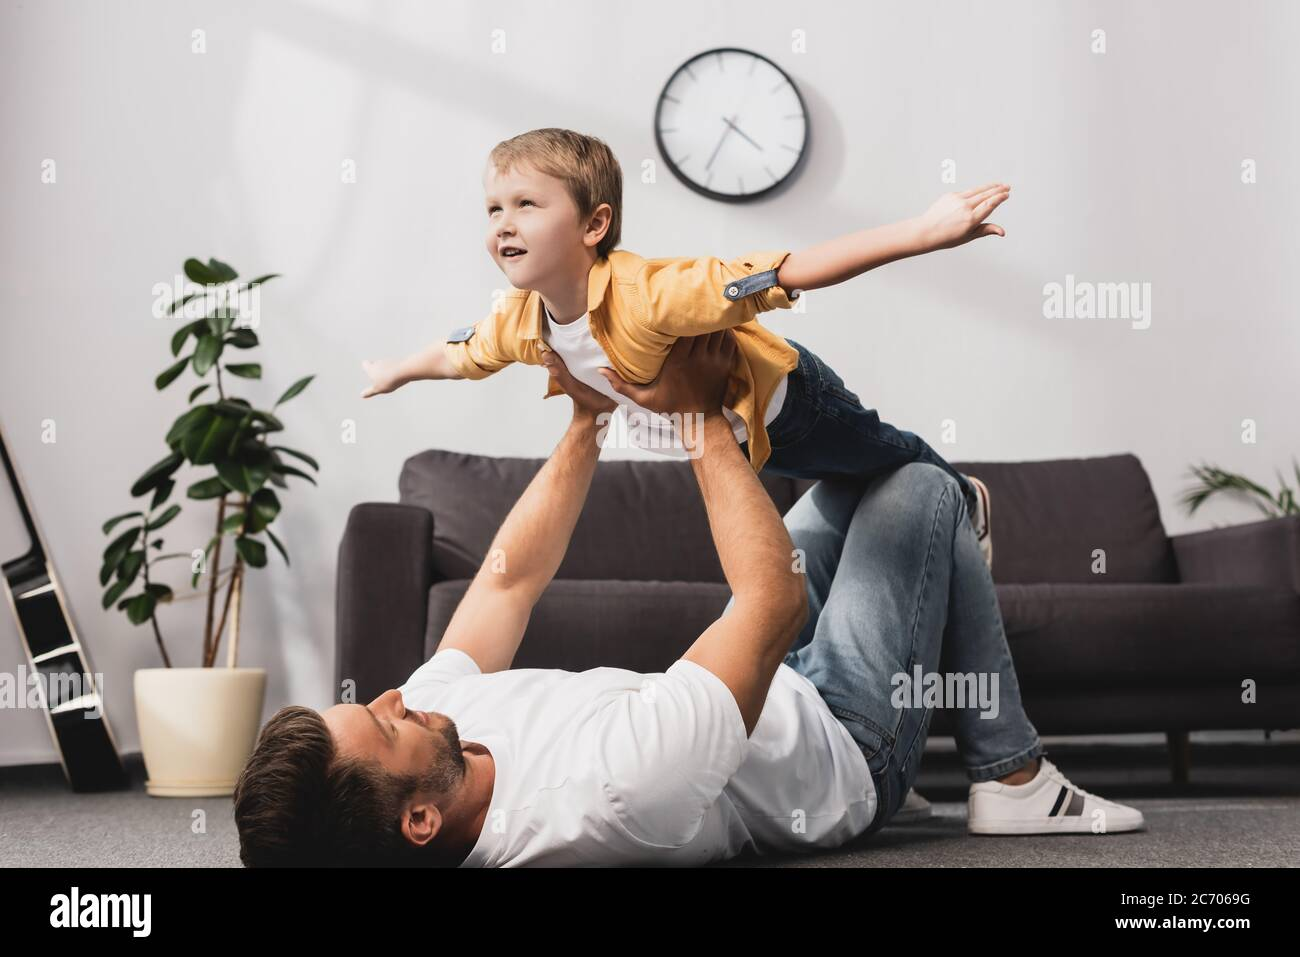 father lying in floor and holding adorabe son imitating flying with outstretched hands Stock Photo